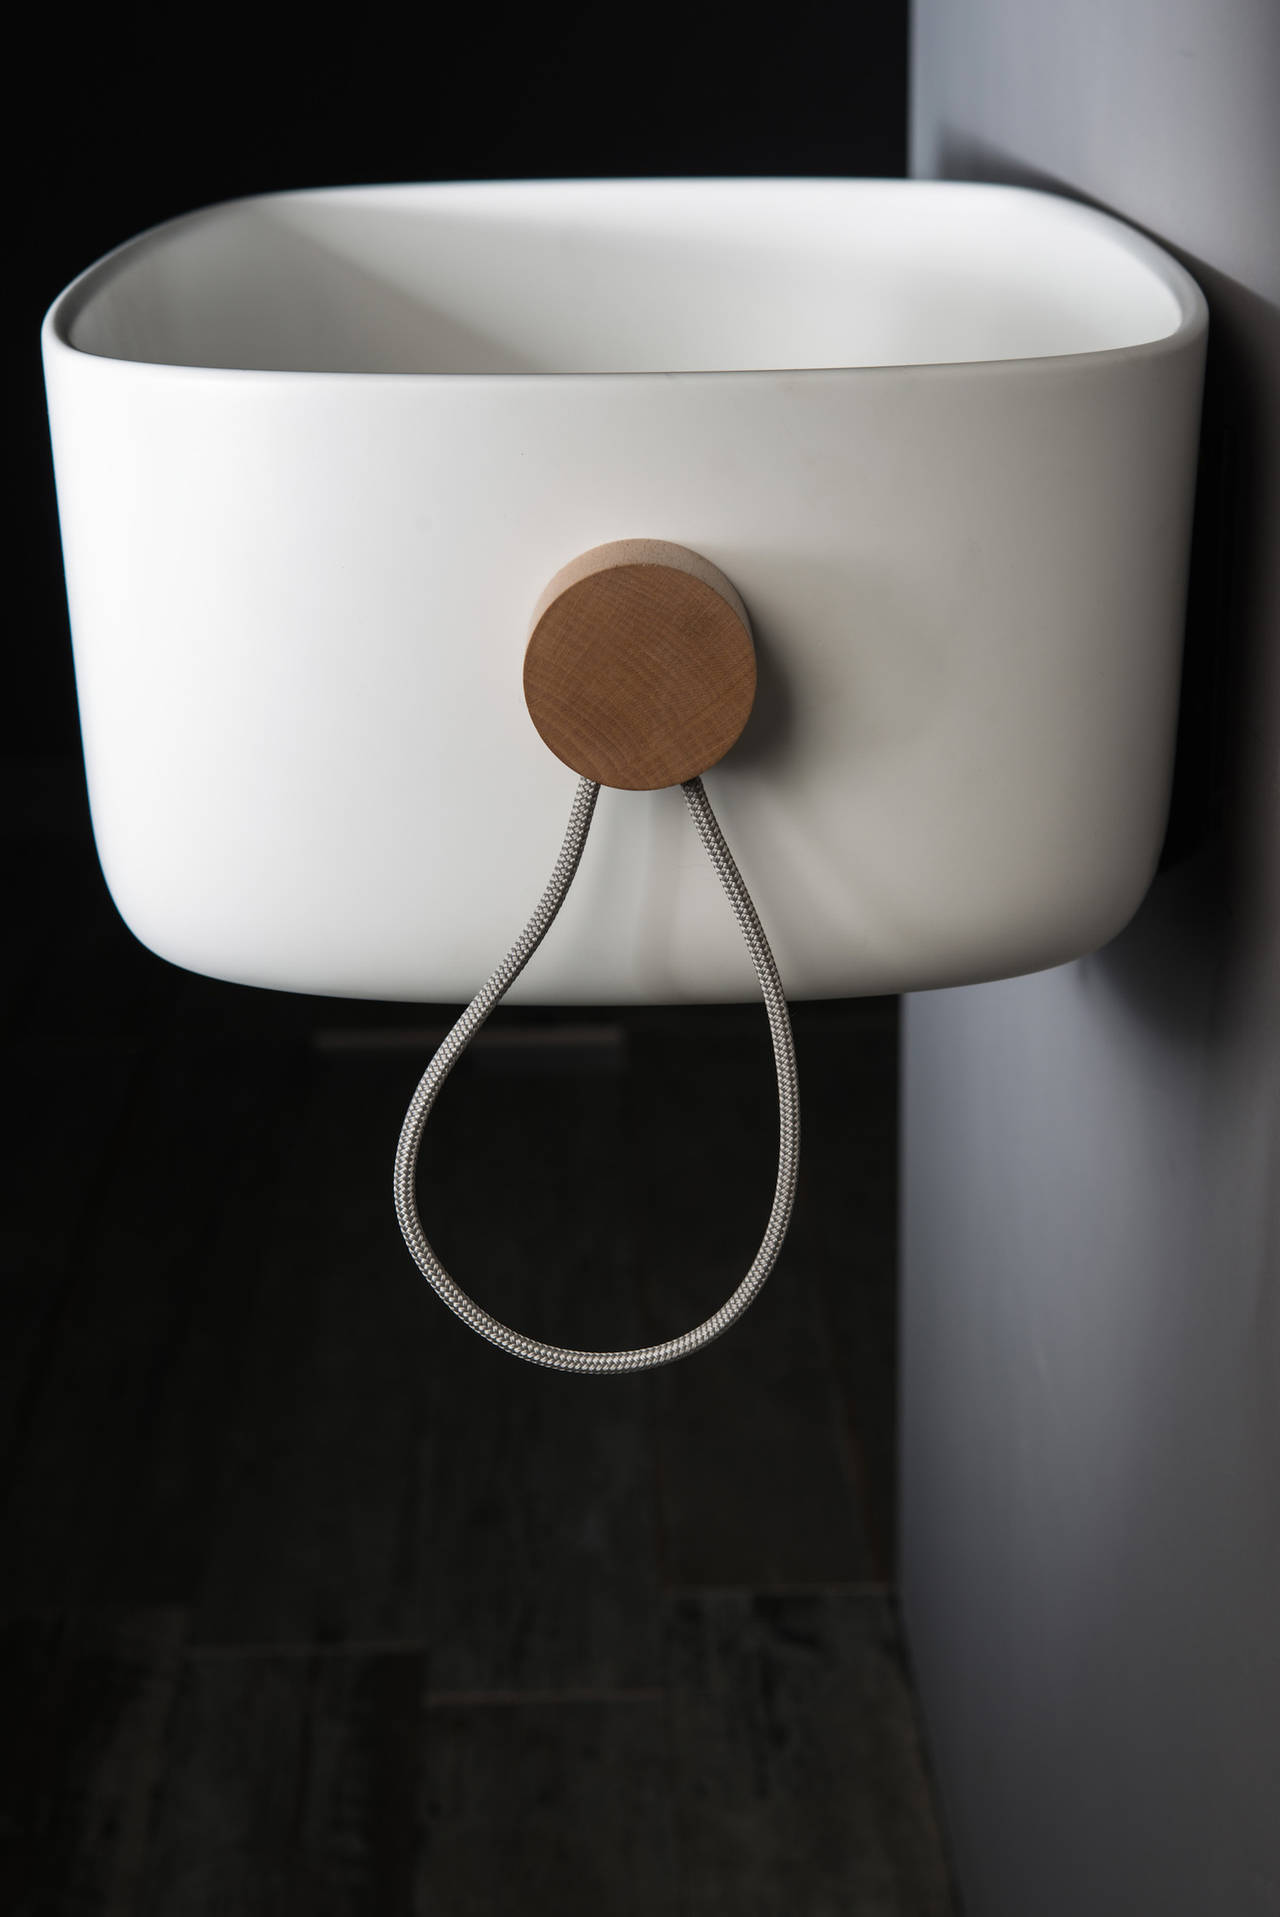 Lavabo Bounce by Ever Life Design disegnato da Monica Graffeo